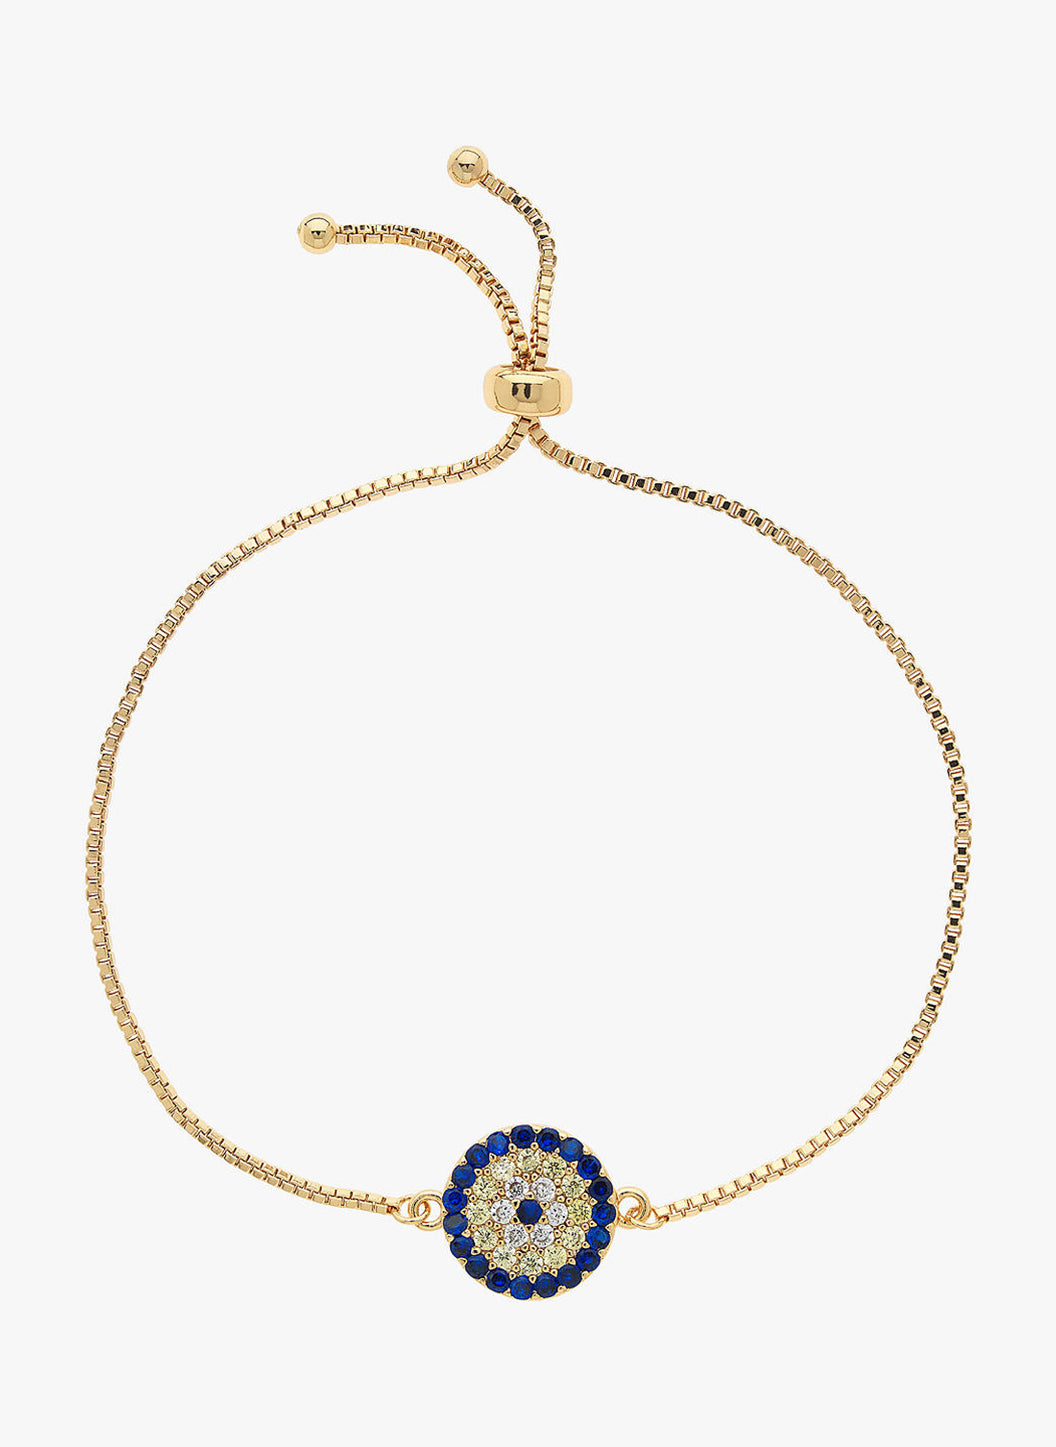 Gold Evil Eye Adjule Bracelet